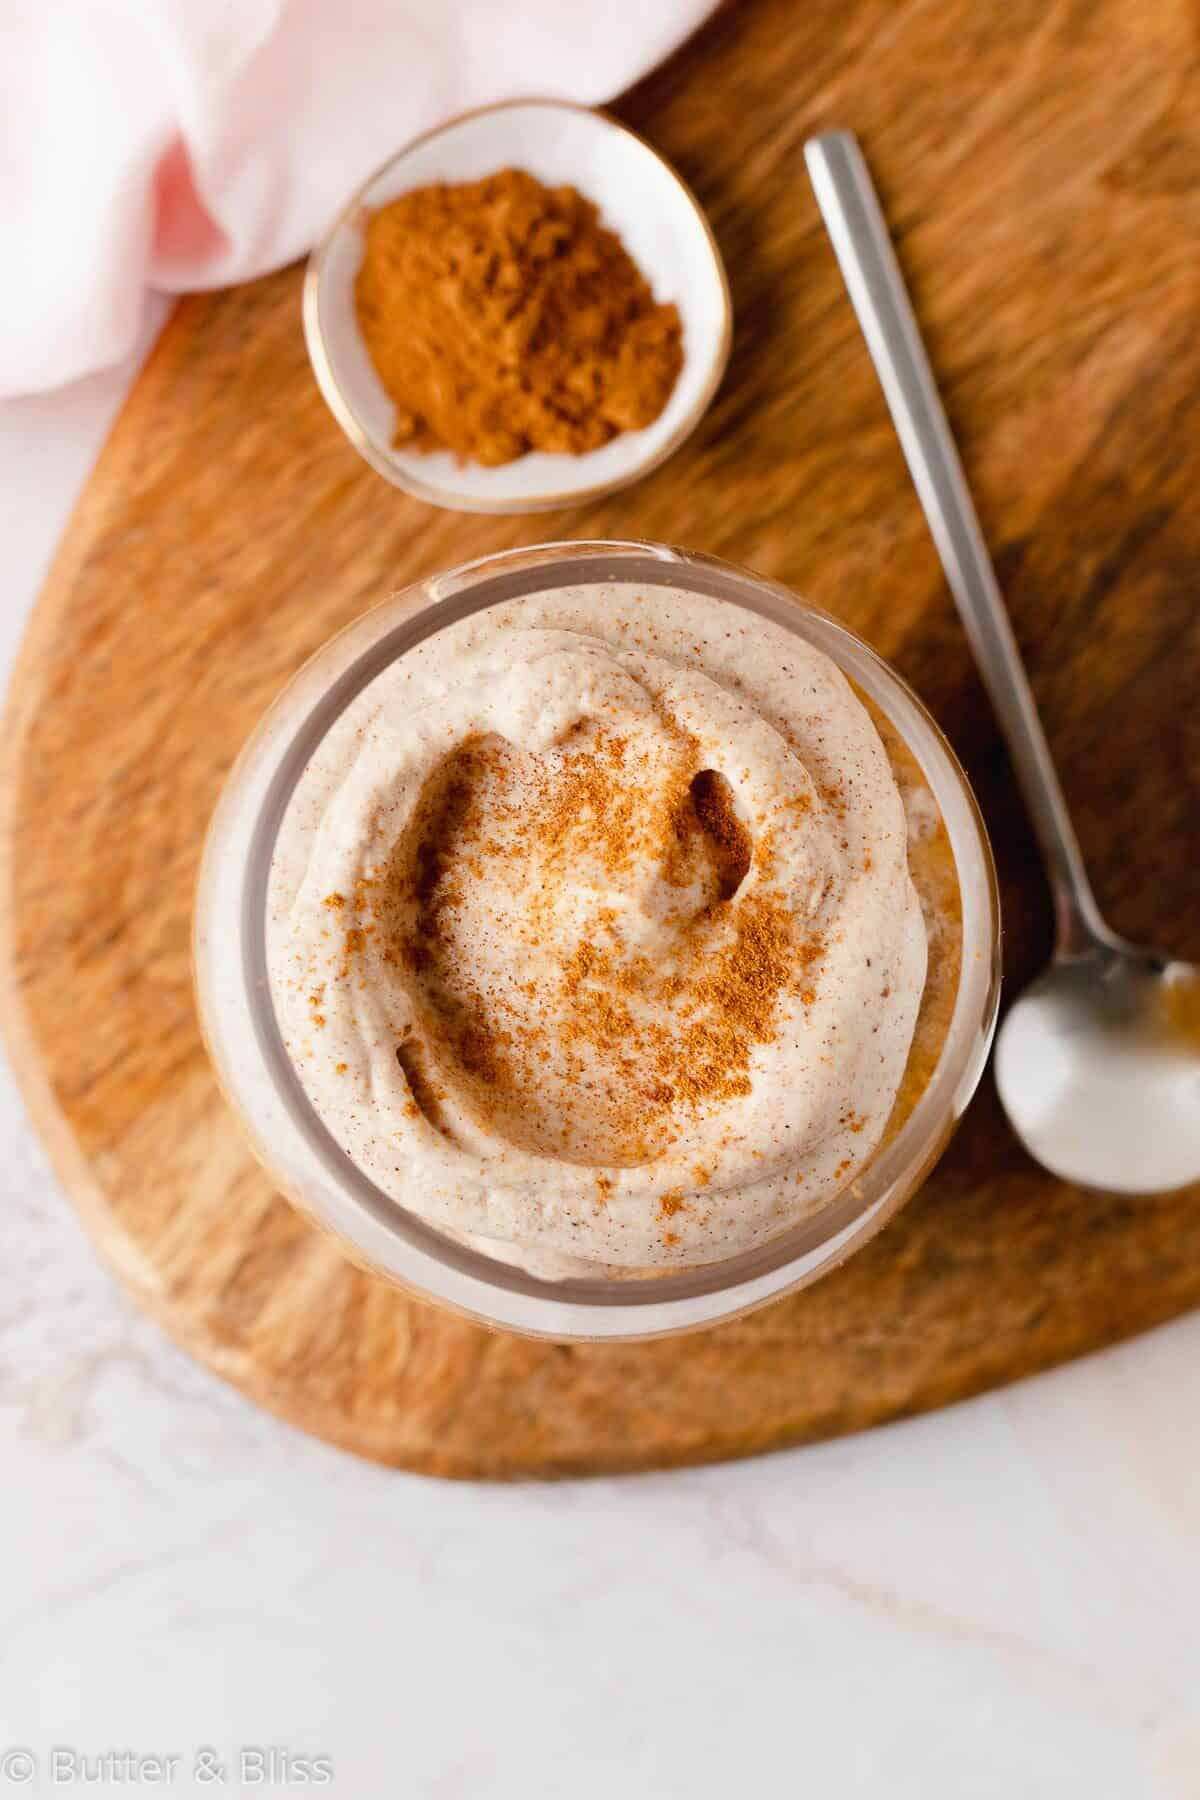 Pumpkin spice latte oats with whipped cream topping